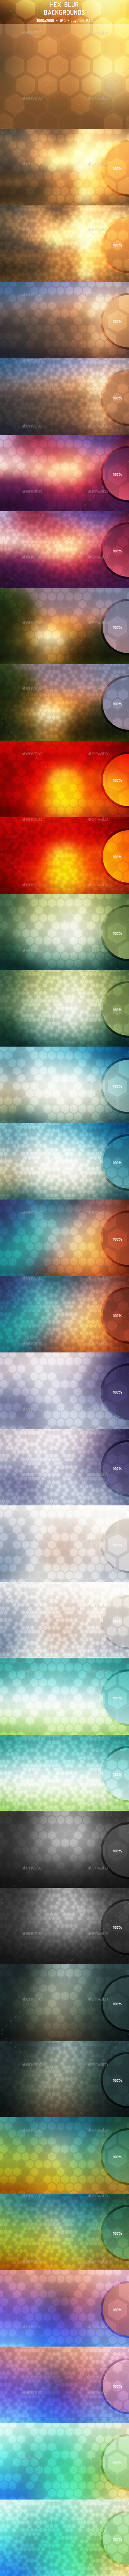 Hex Blur Backgrounds - Backgrounds Graphics